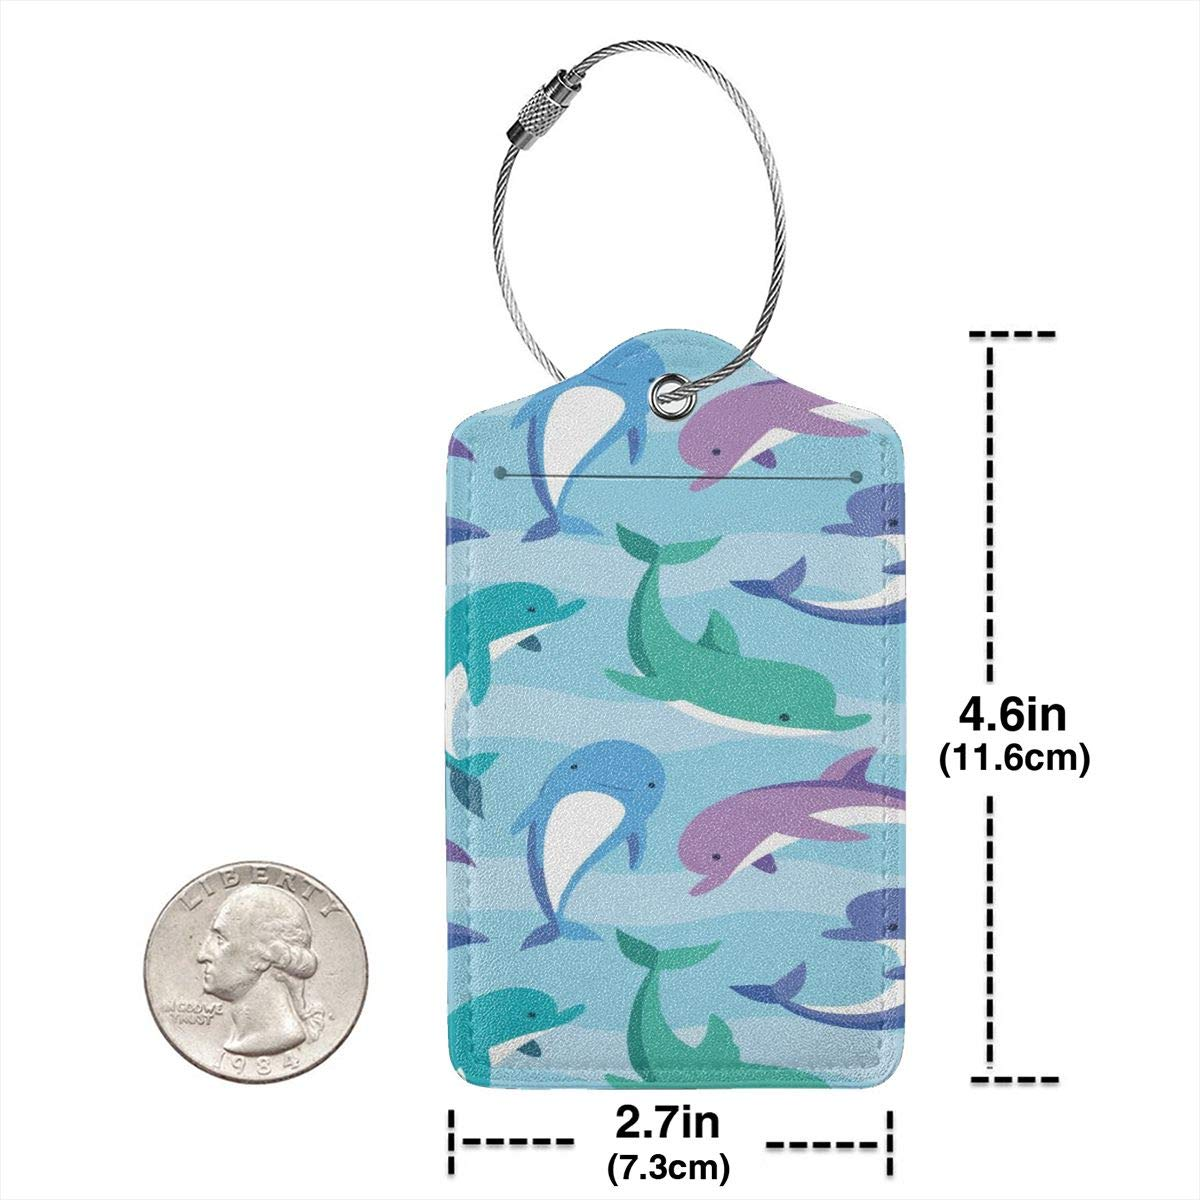 Key Tags for Cruise Ships Honeymoon Gift Leather Luggage Tags Full Privacy Cover and Stainless Steel Loop 1 2 4 Pcs Set Cartoon Cute Dolphin 2.7 x 4.6 Blank Tag